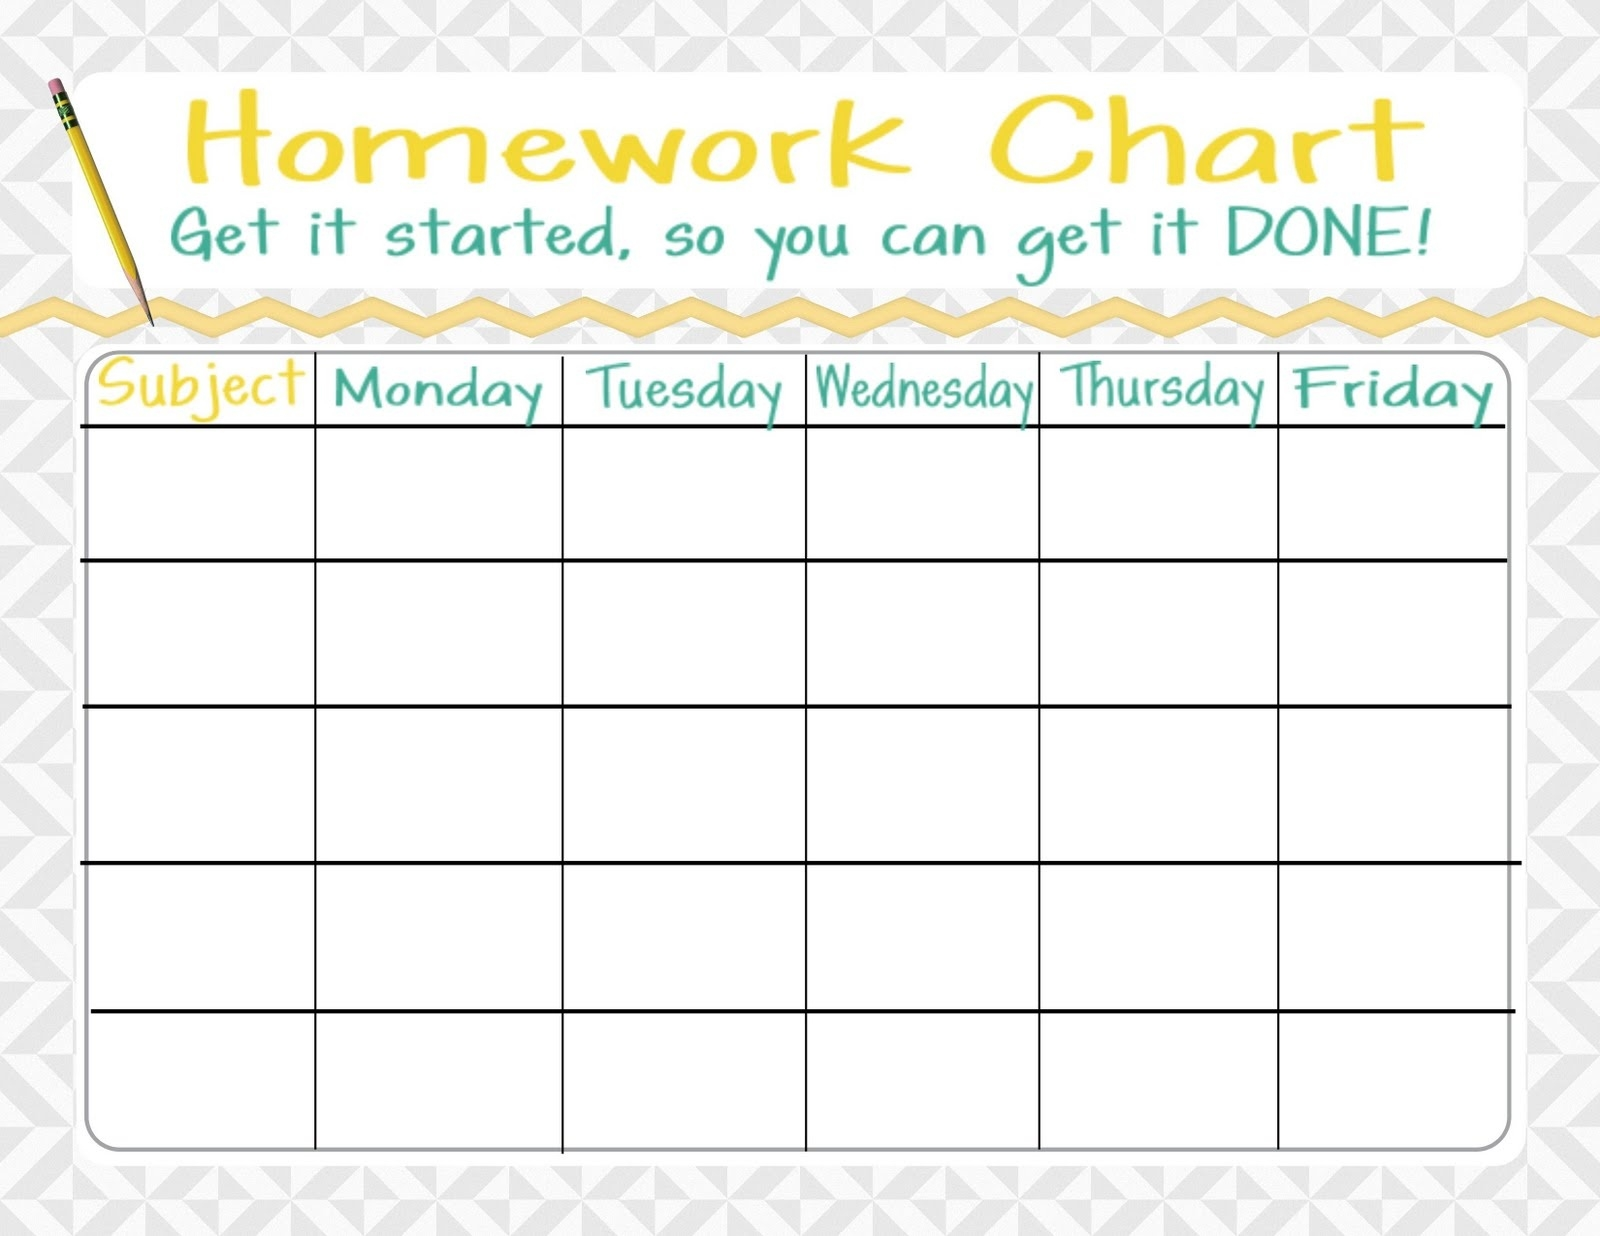 Weekly Homework Assignment Sheets - Yeniscale.co  1St Grade Homework Chart Templates